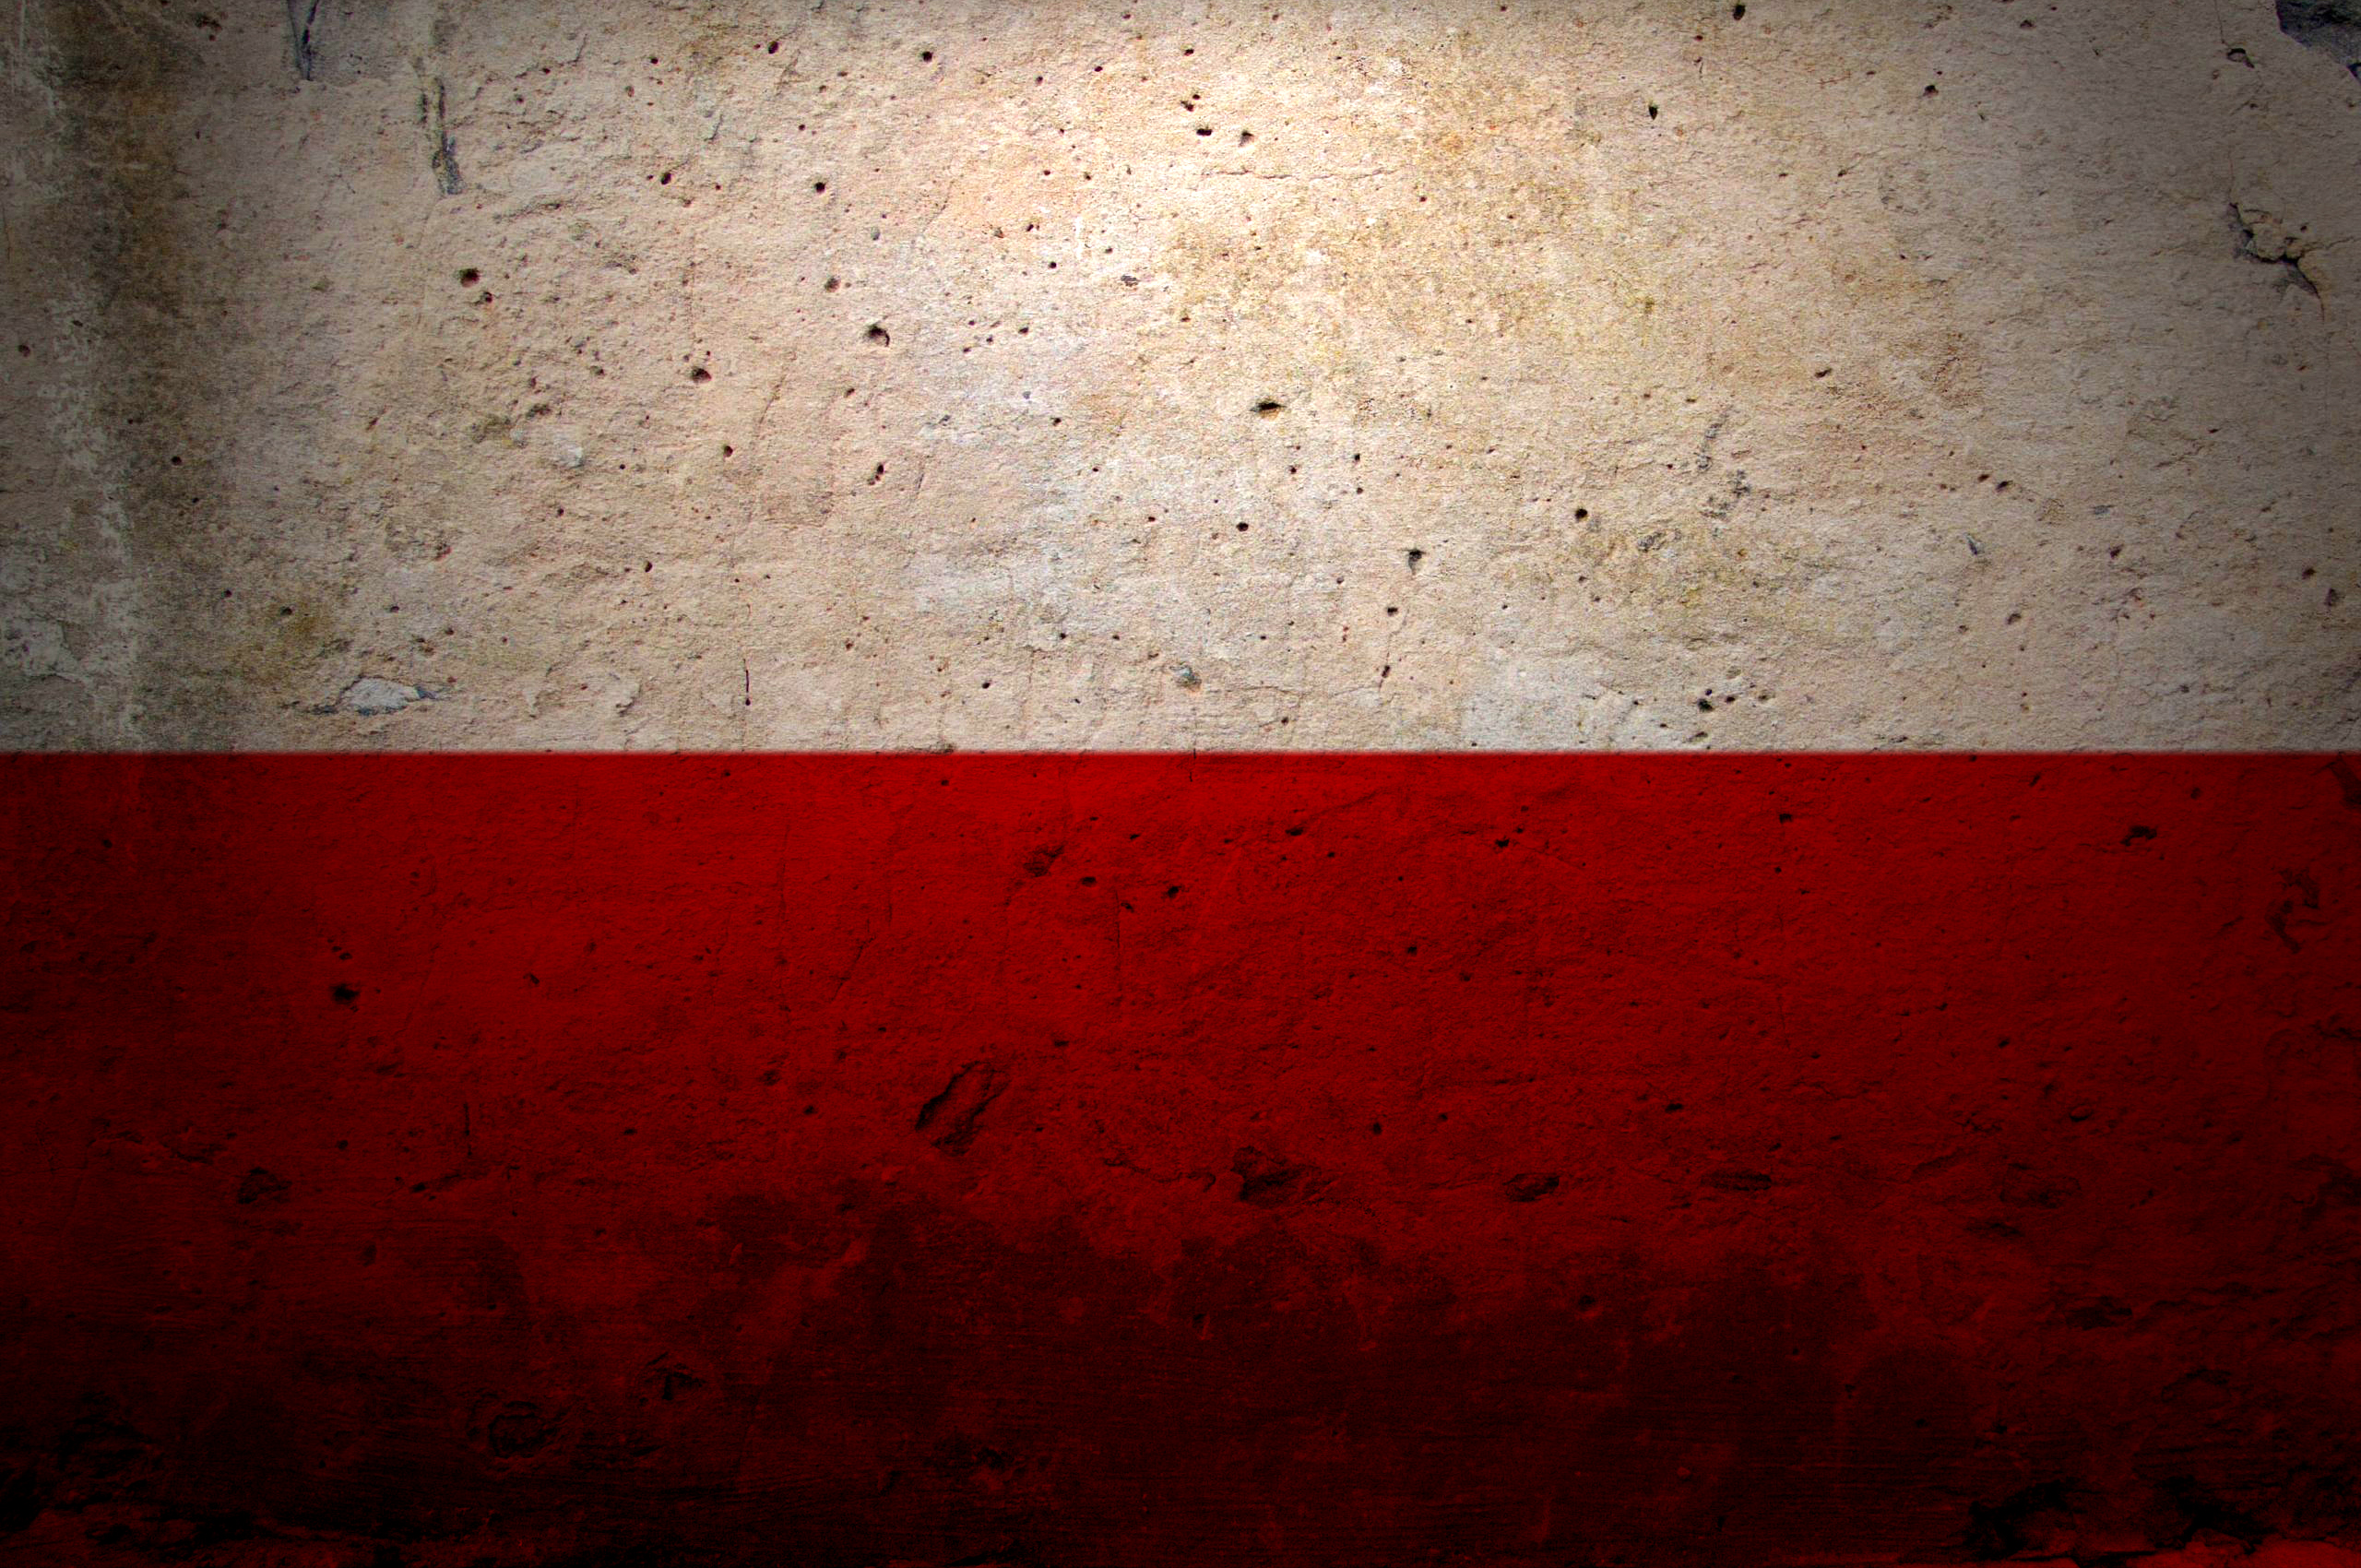 Flag Of Poland Backgrounds on Wallpapers Vista